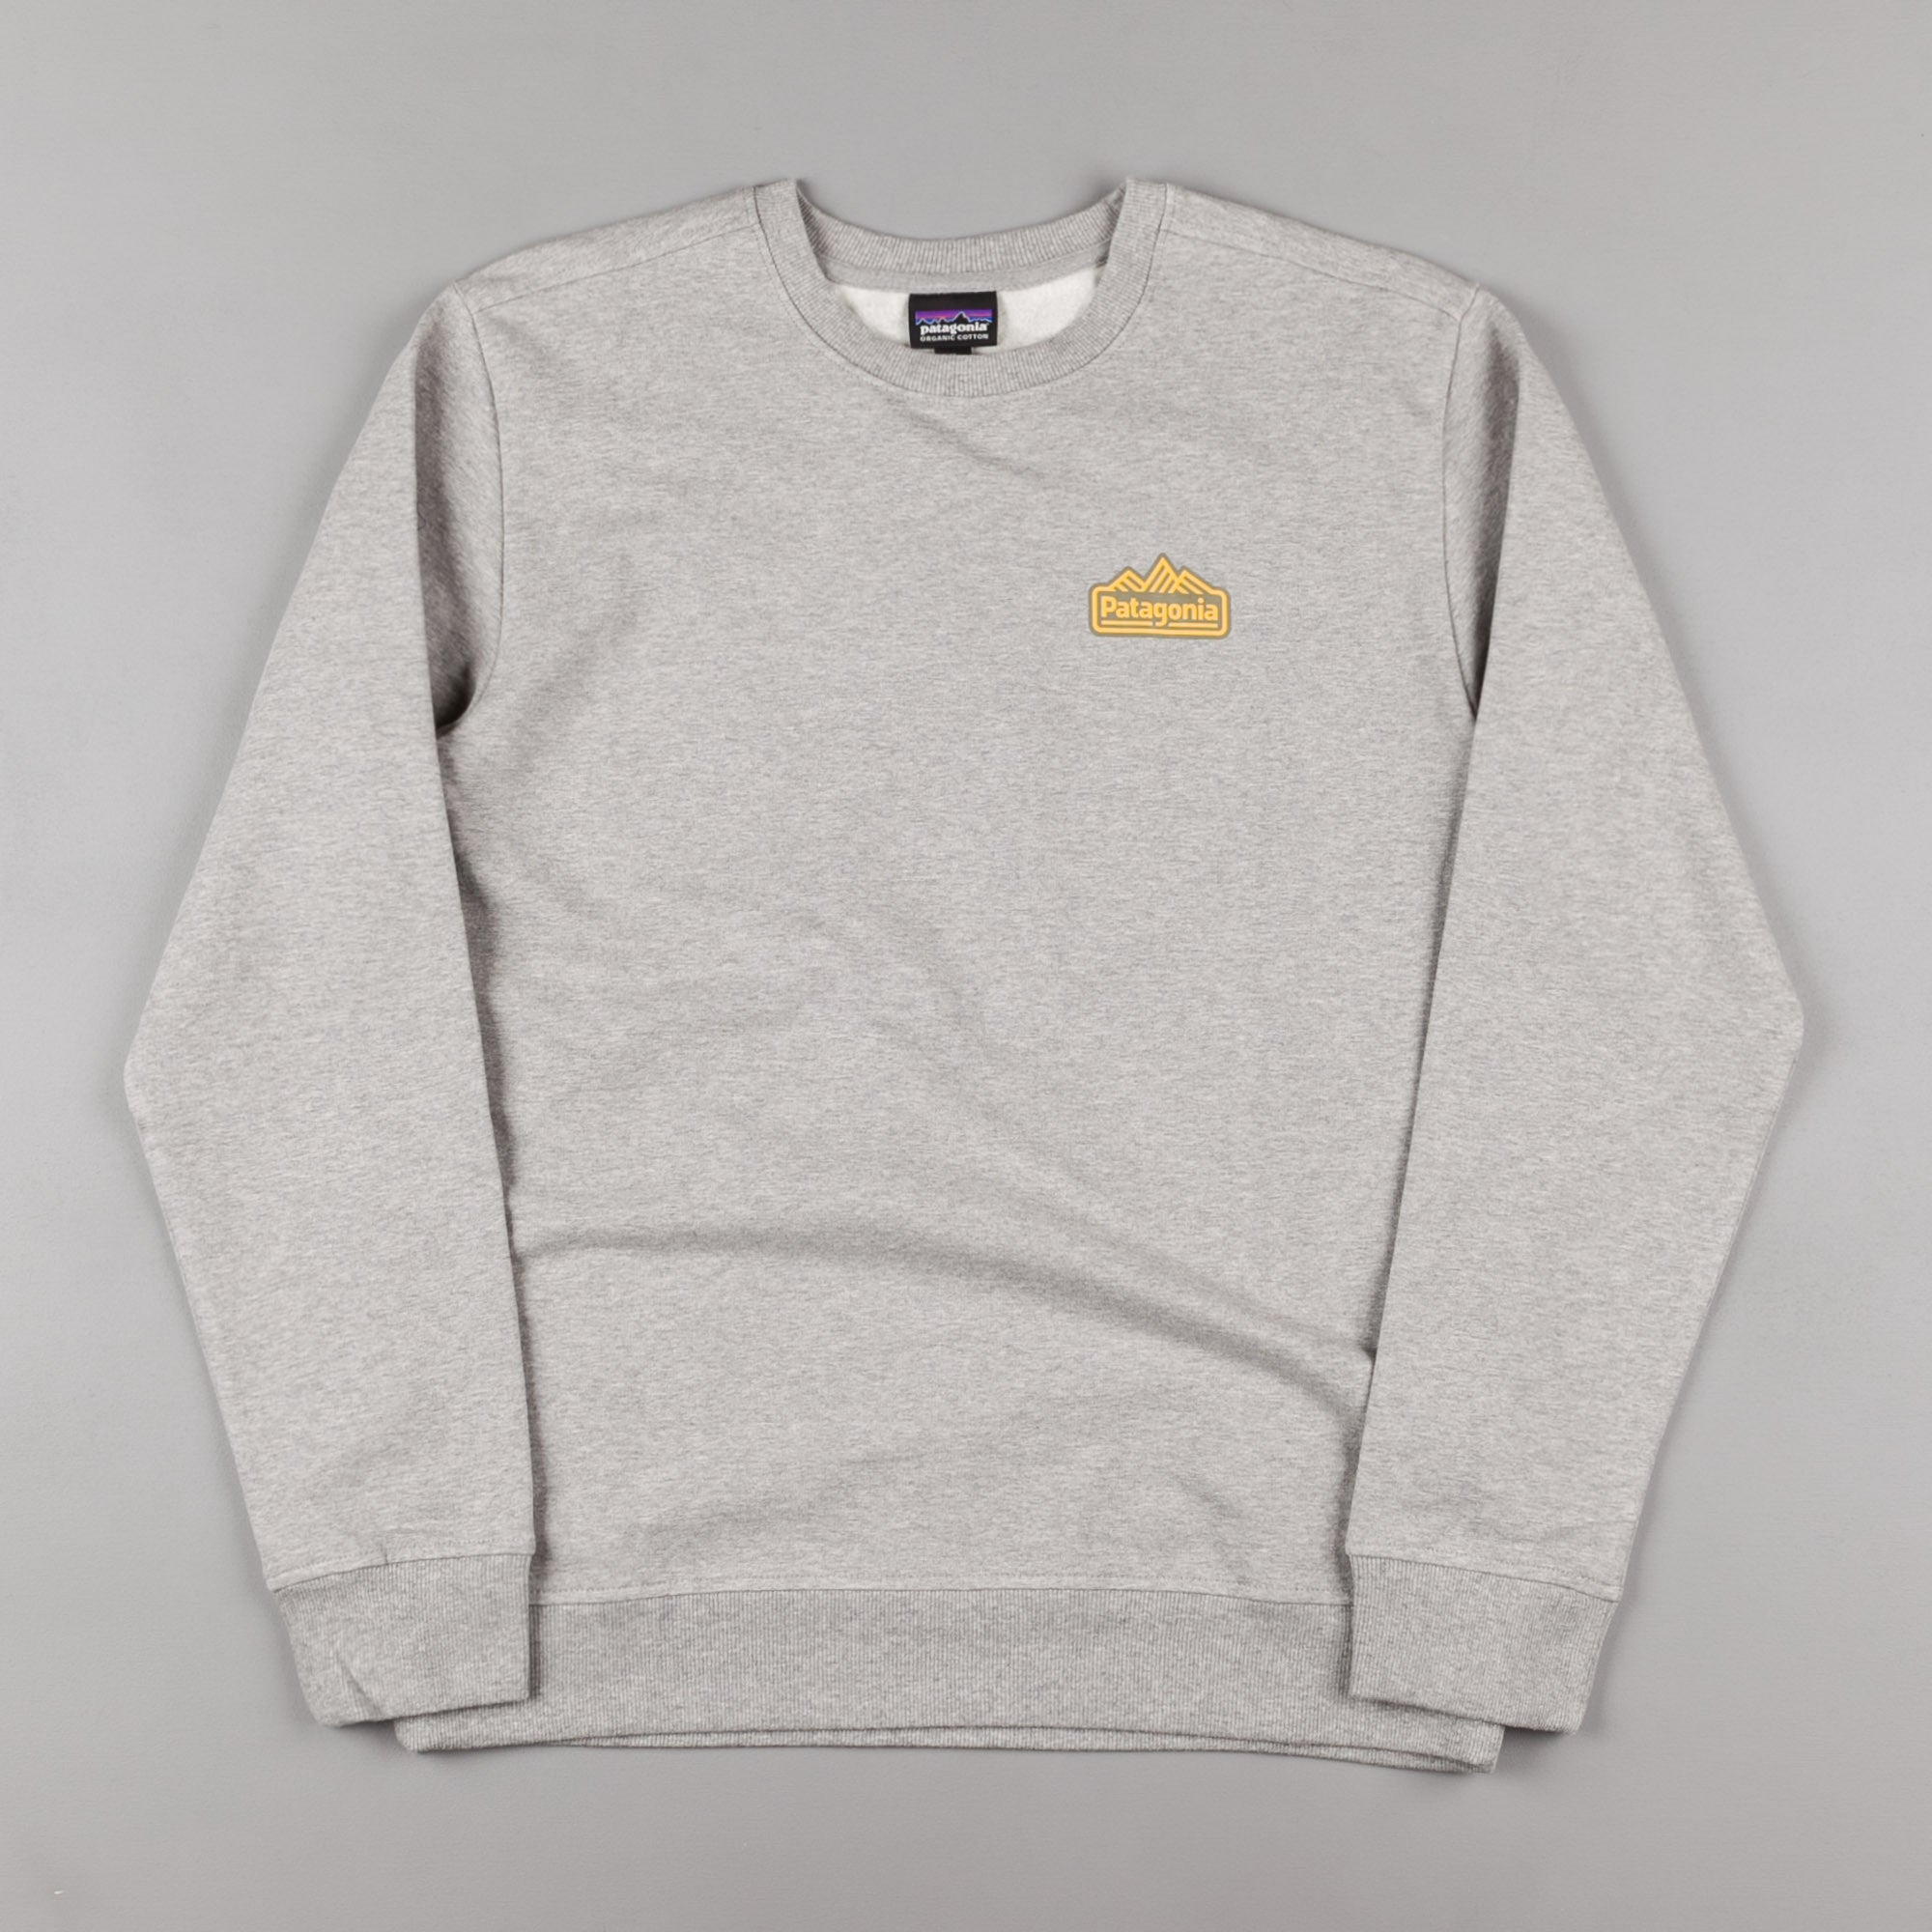 Patagonia Range Station Midweight Crewneck Sweatshirt - Feather Grey